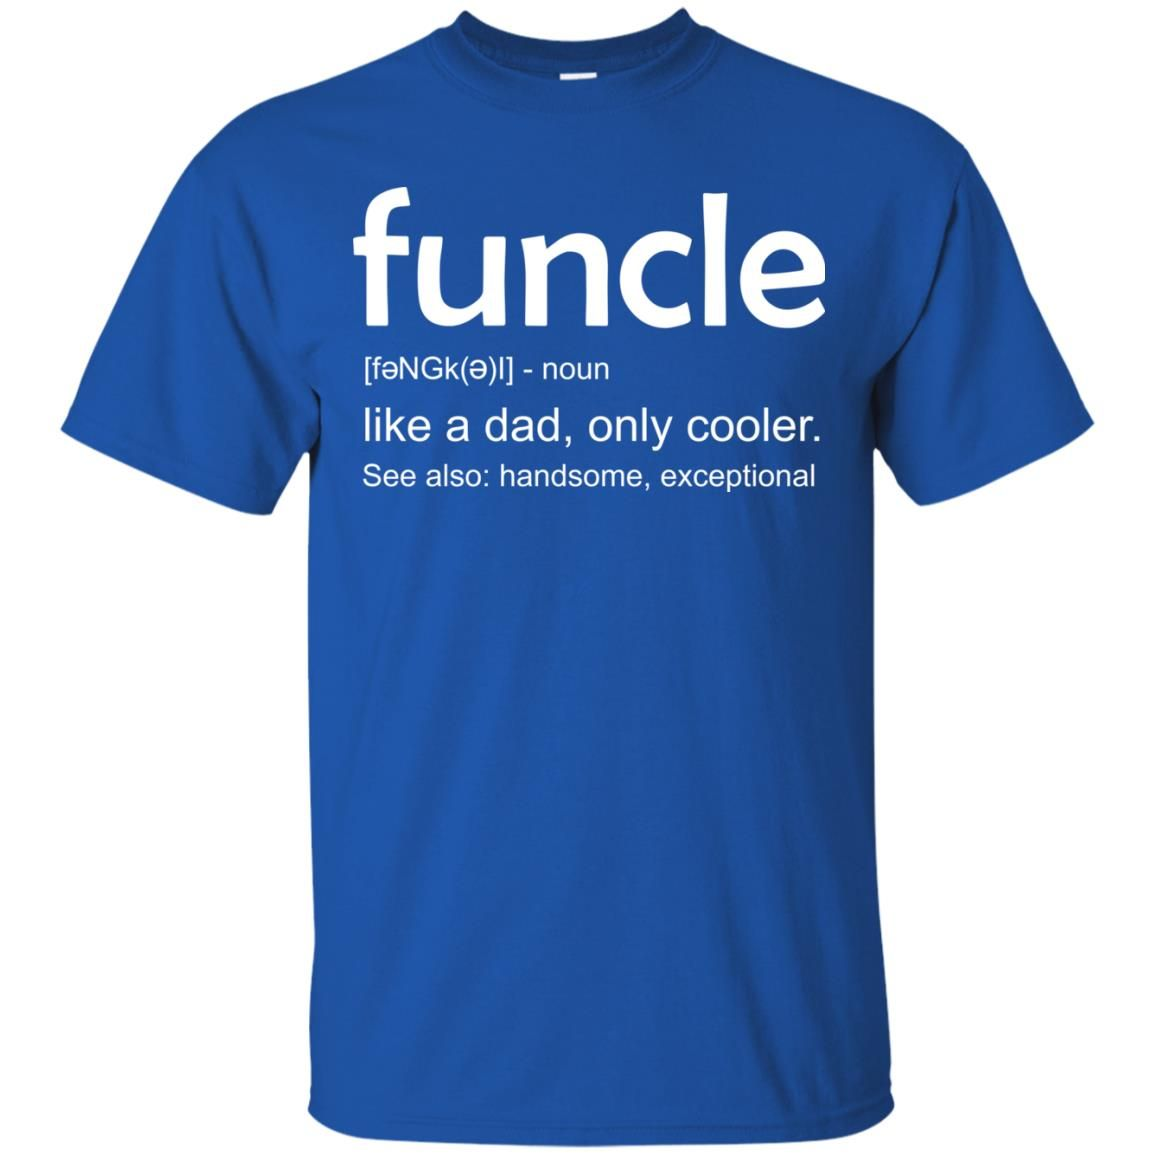 c005364ff funcle t-shirt: Funcle Definition Like A Dad Only Cooler - Rockatee